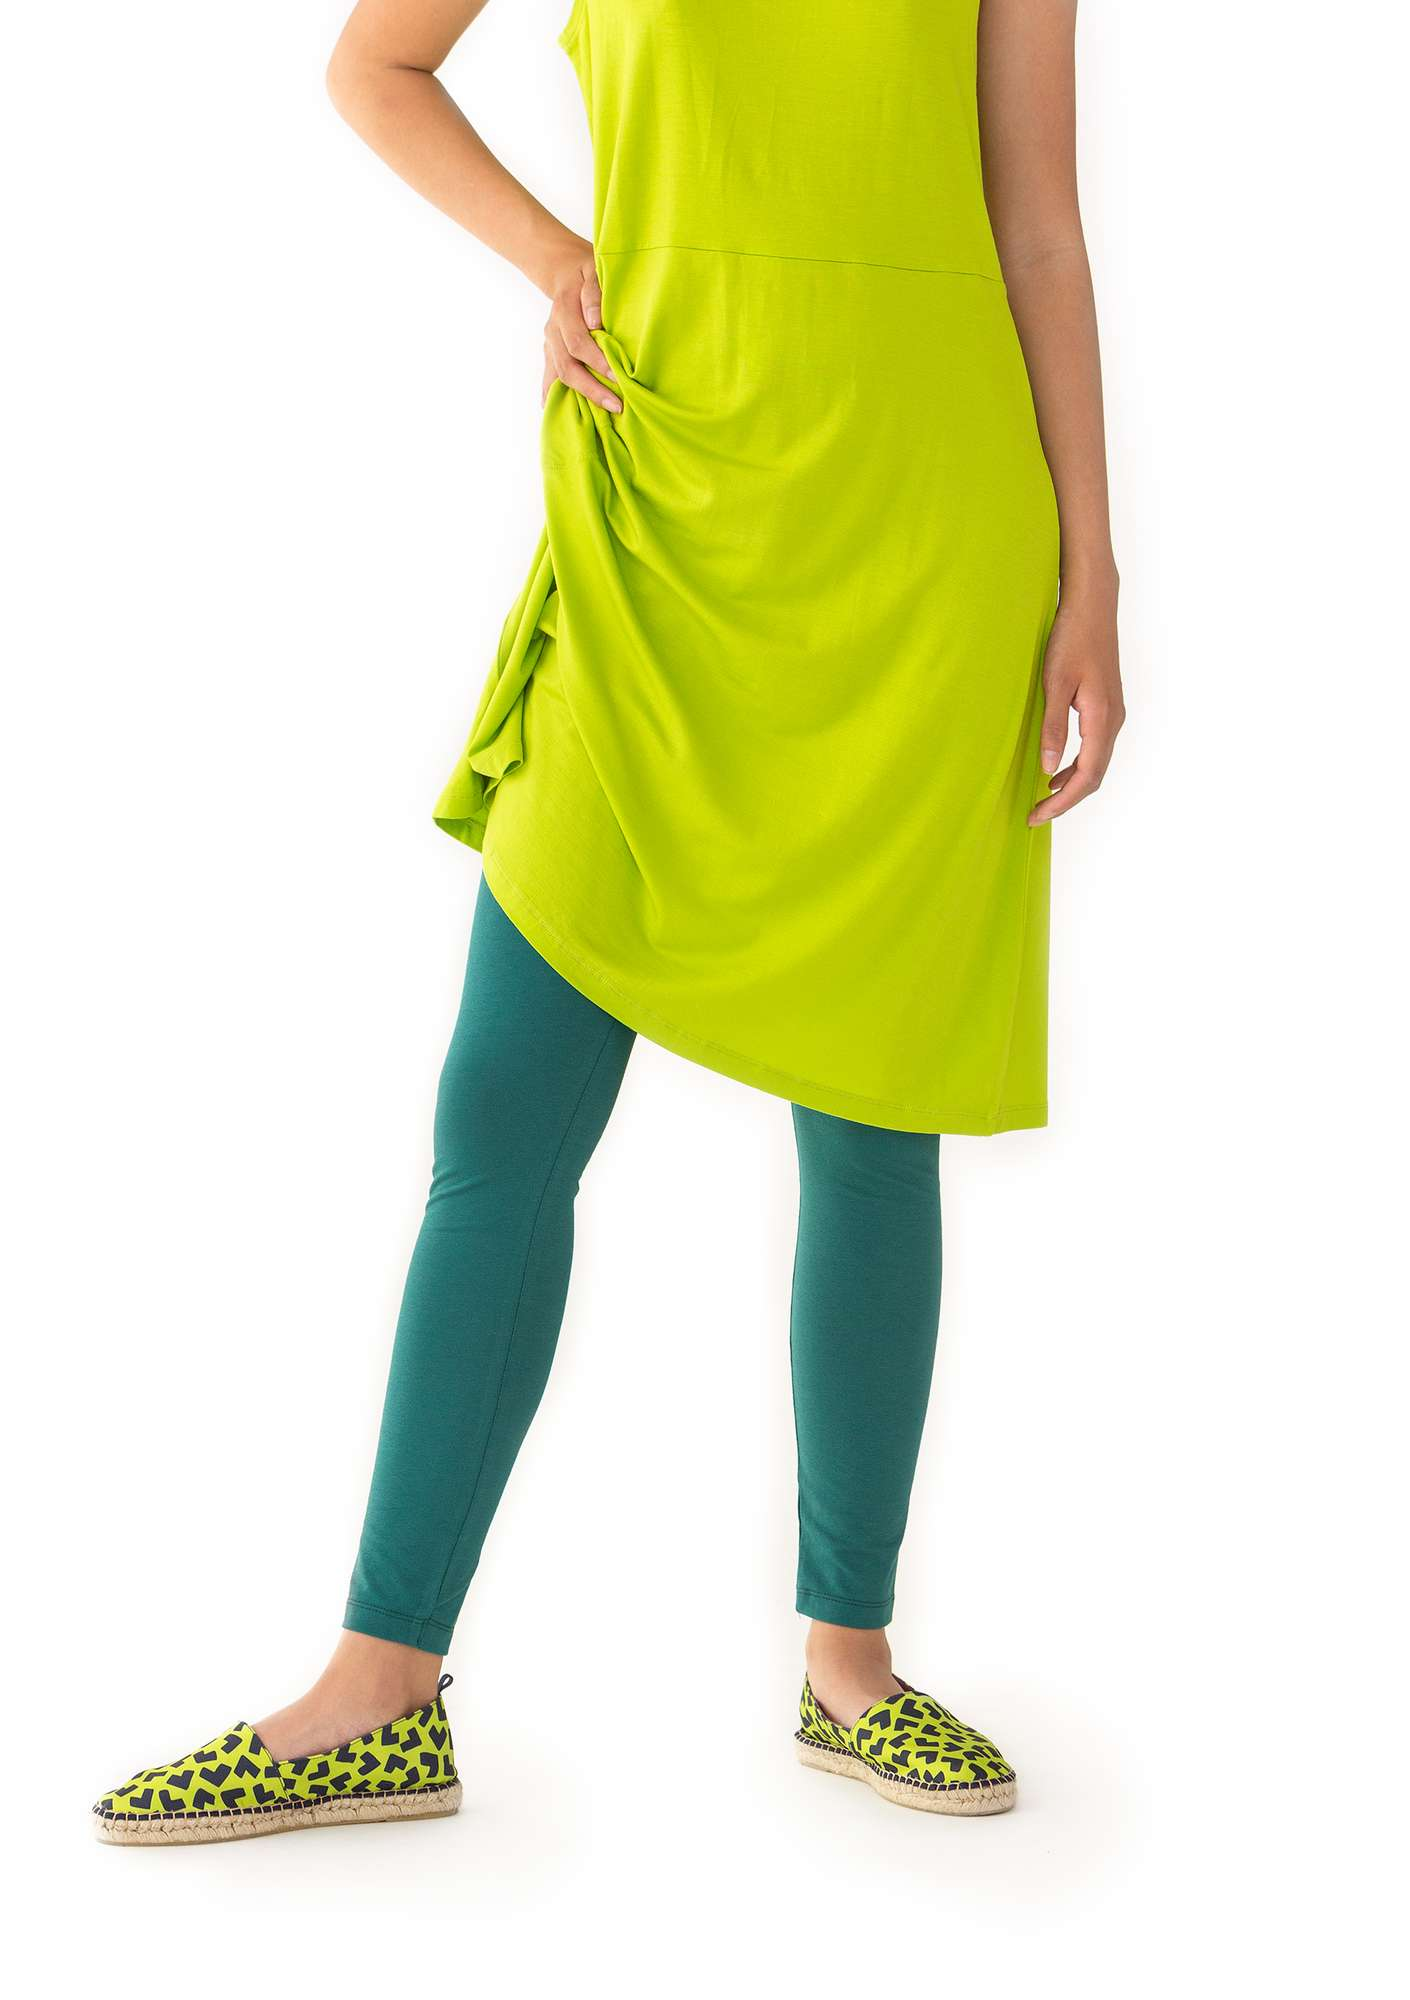 Leggings in organic cotton/spandex peacock  green